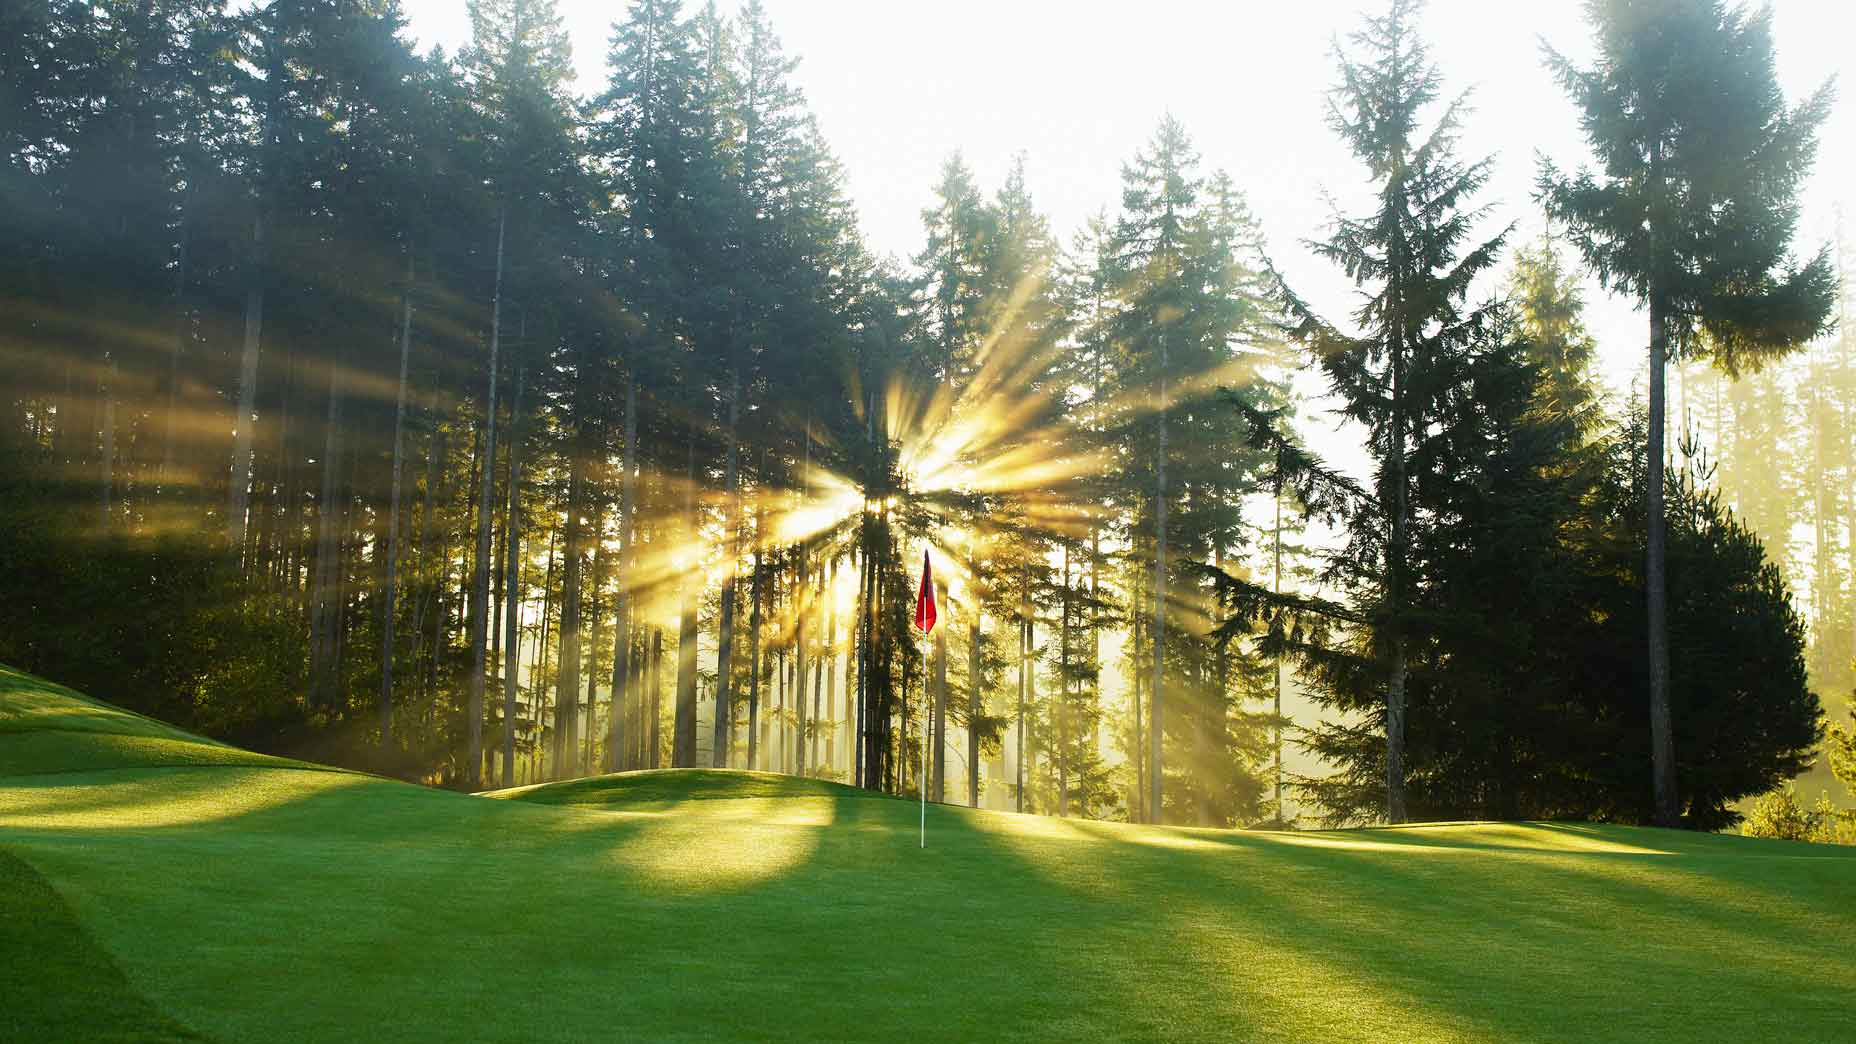 Sunrise through trees on golf green